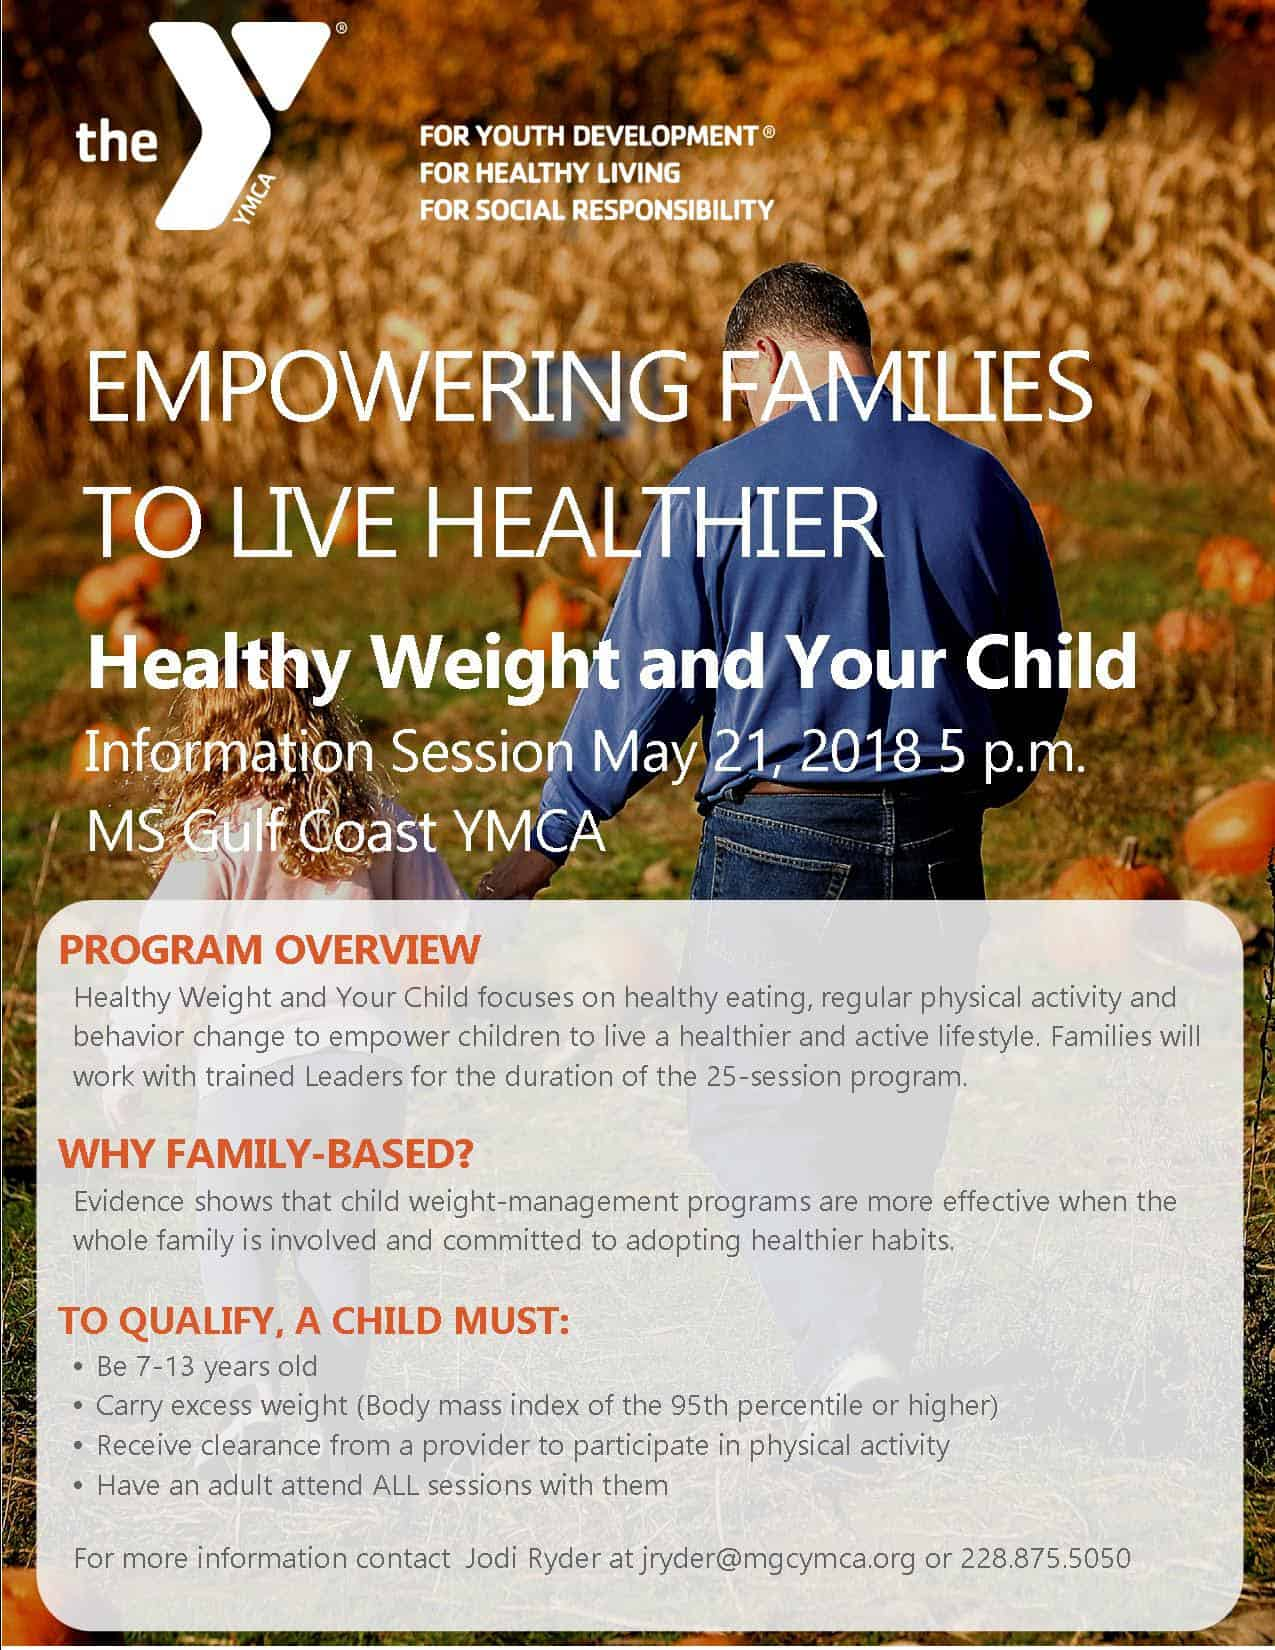 HWYC-jpeg Mississippi Gulf Coast YMCA Takes on Childhood Obesity with New Program